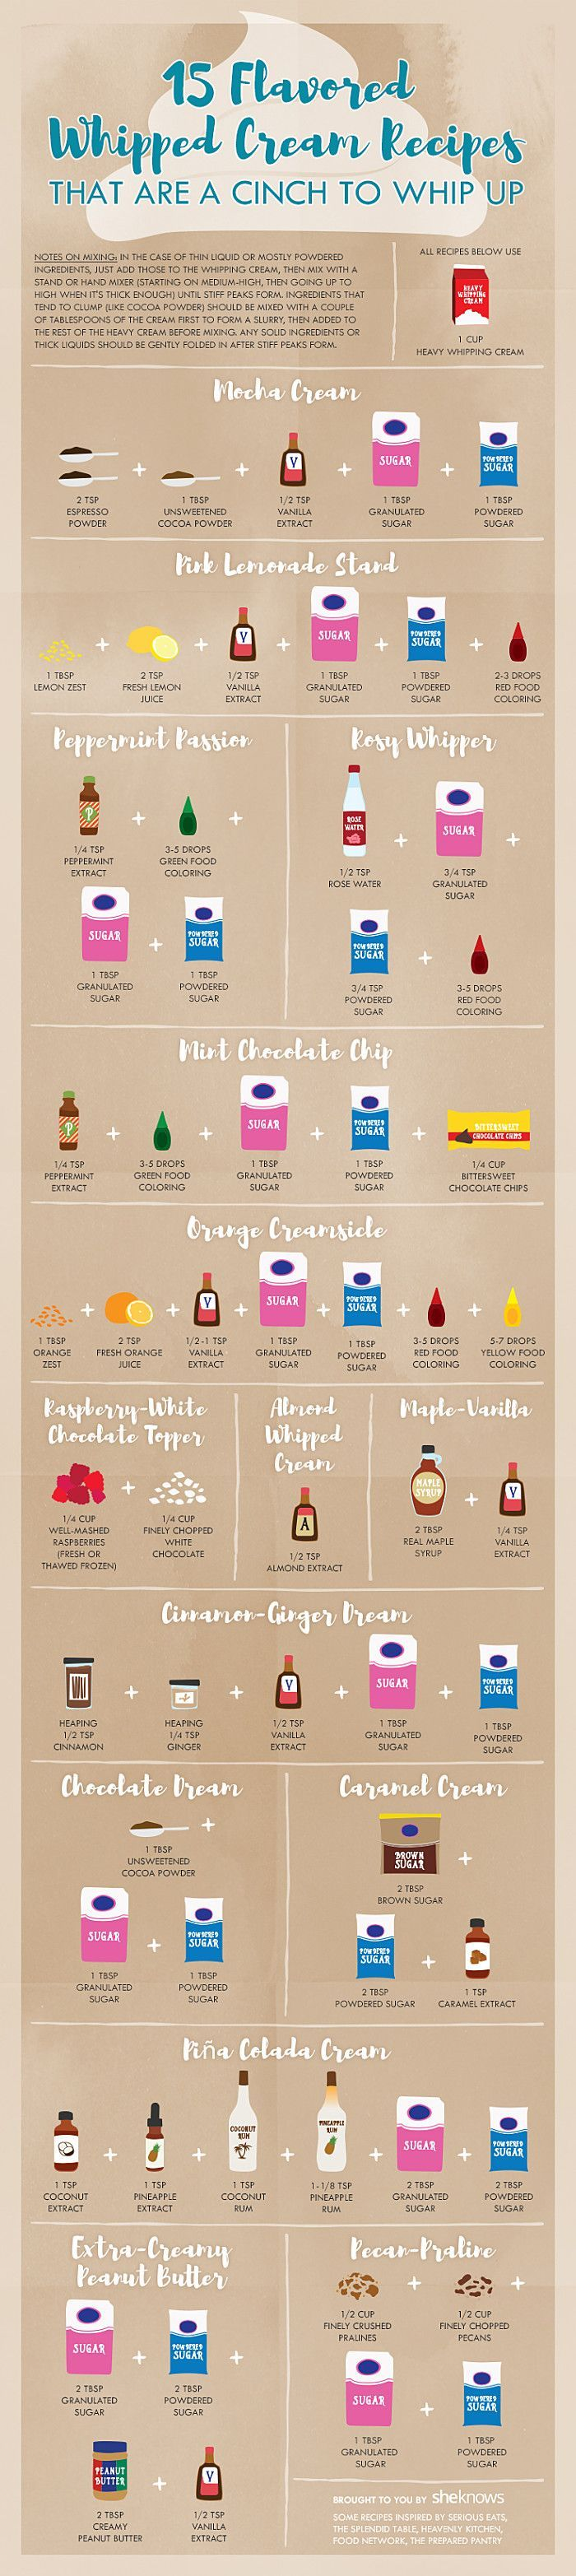 flavored whipped cream recipes